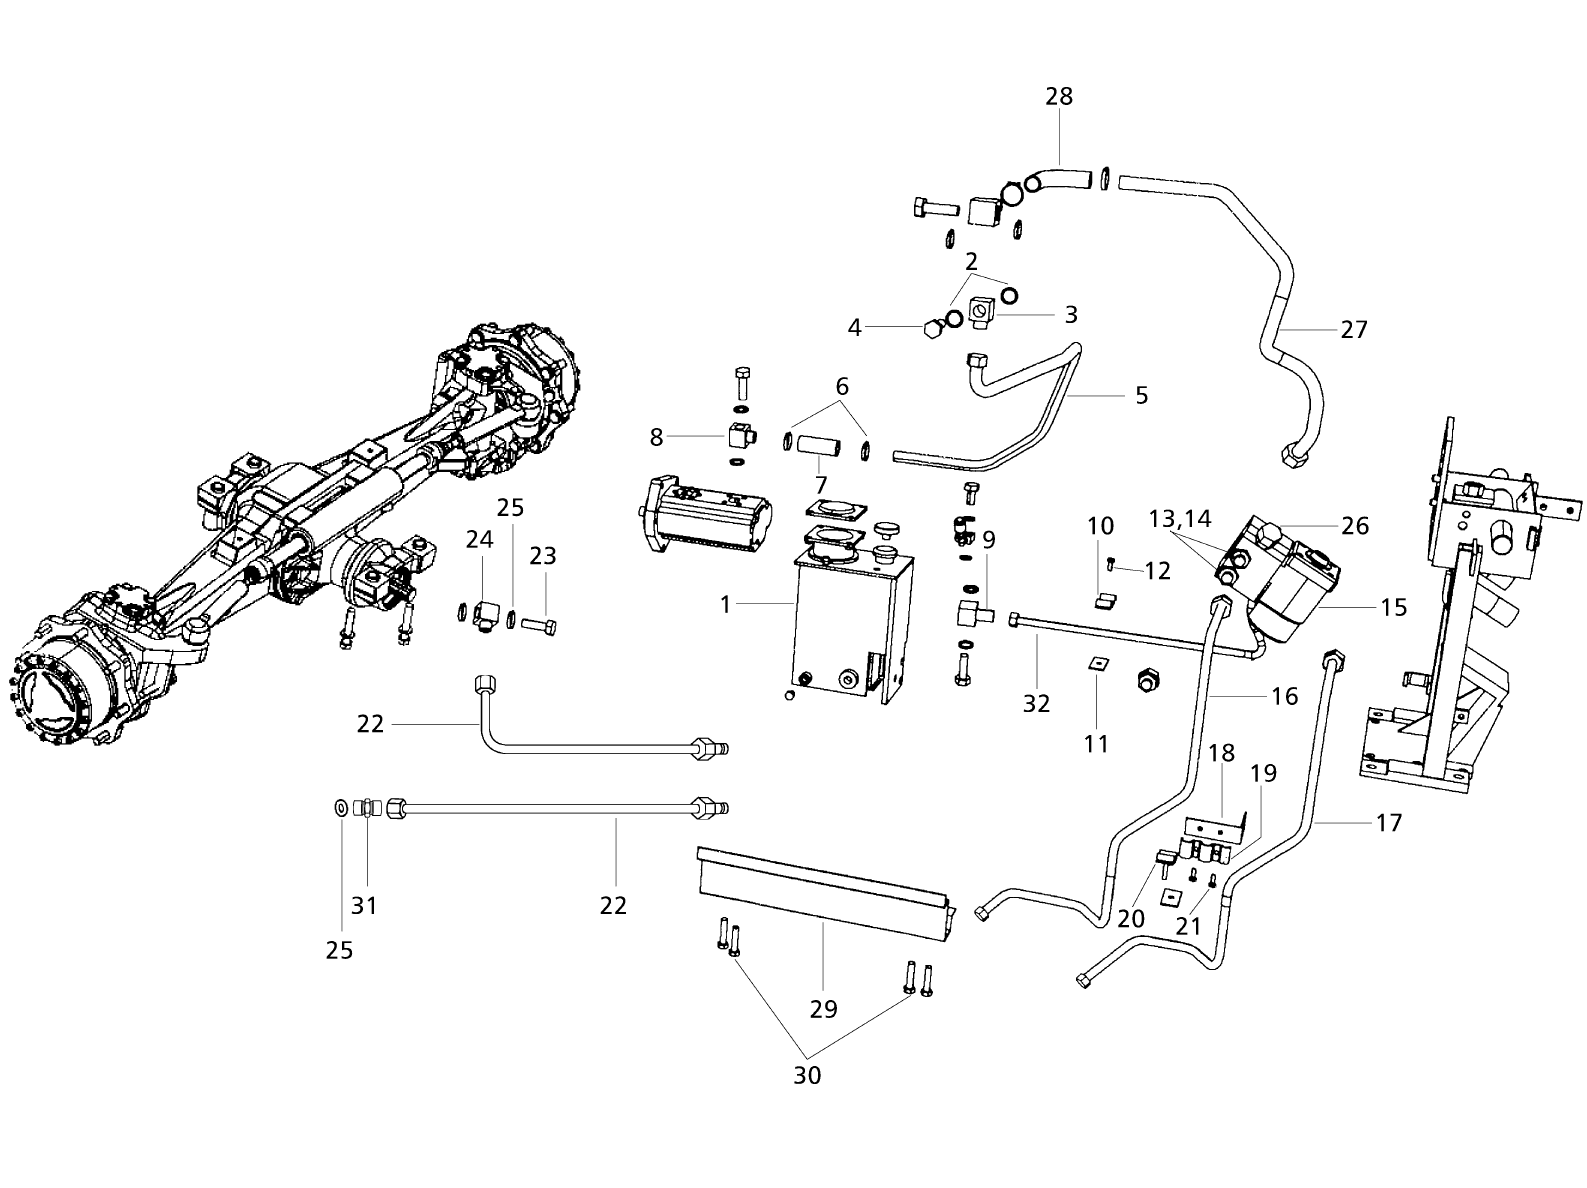 Tractor Front Axle Parts : Steering front axle parts for wheel drive